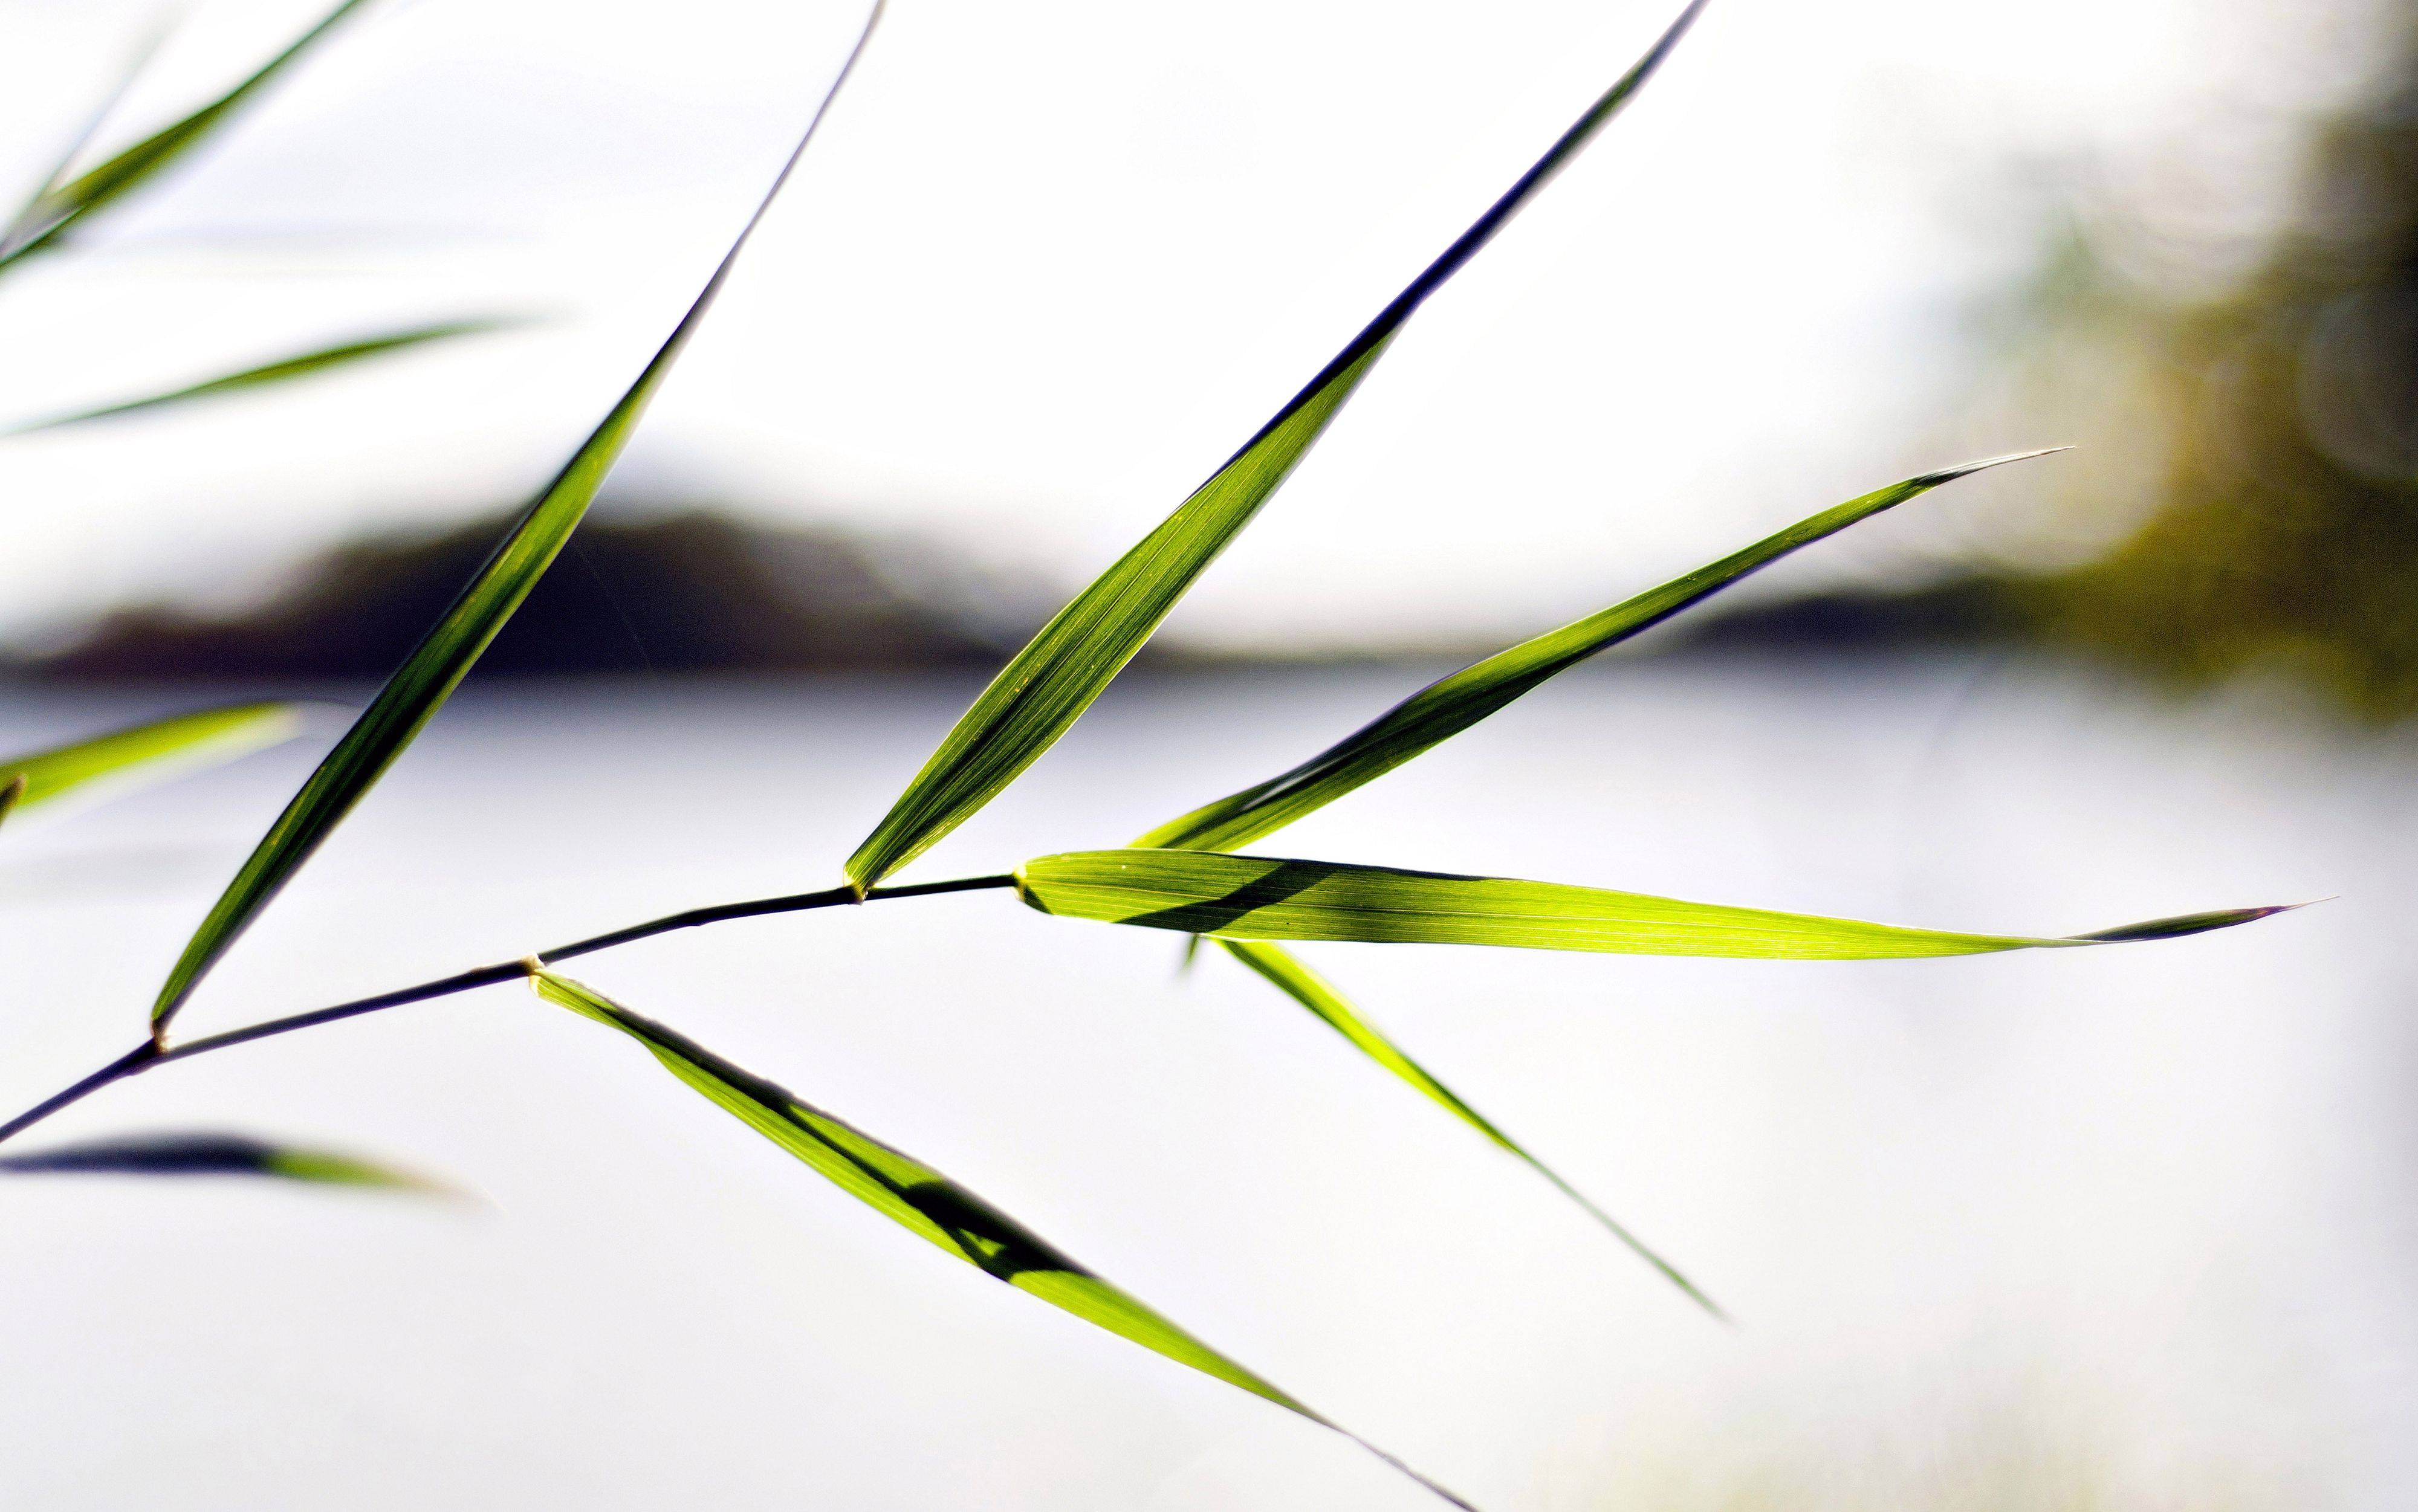 Mario Bialek of Palatine,A long stem of grass at the forest preserve.